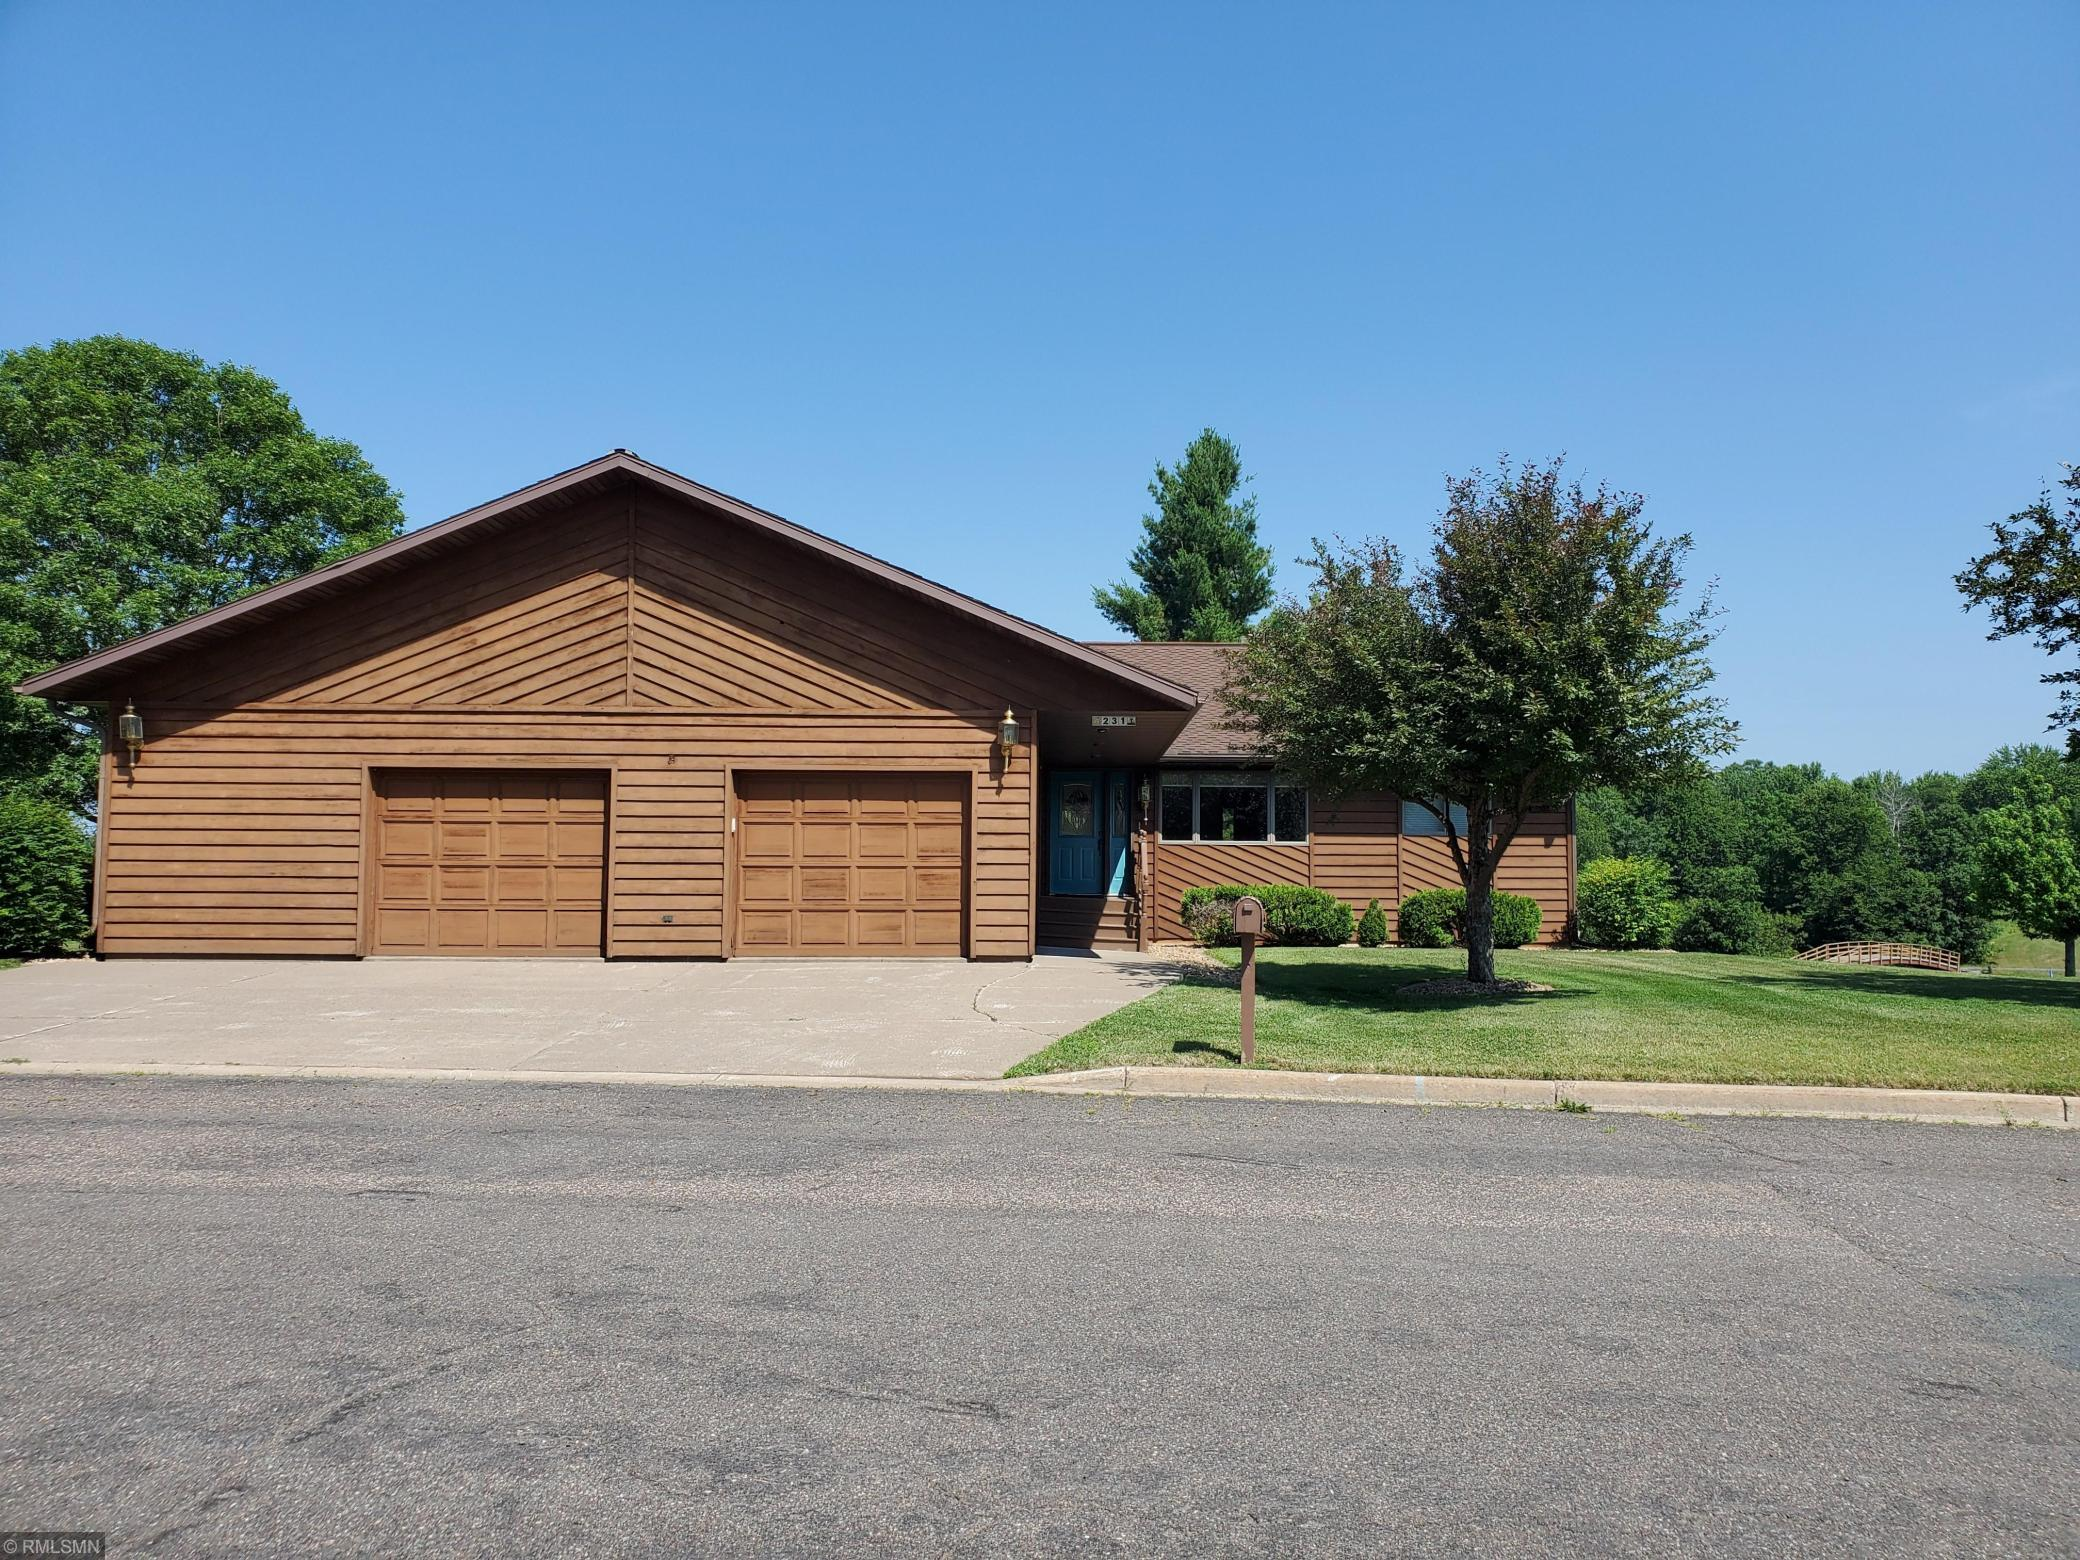 231 Rolling Oaks Property Photo - Barron, WI real estate listing